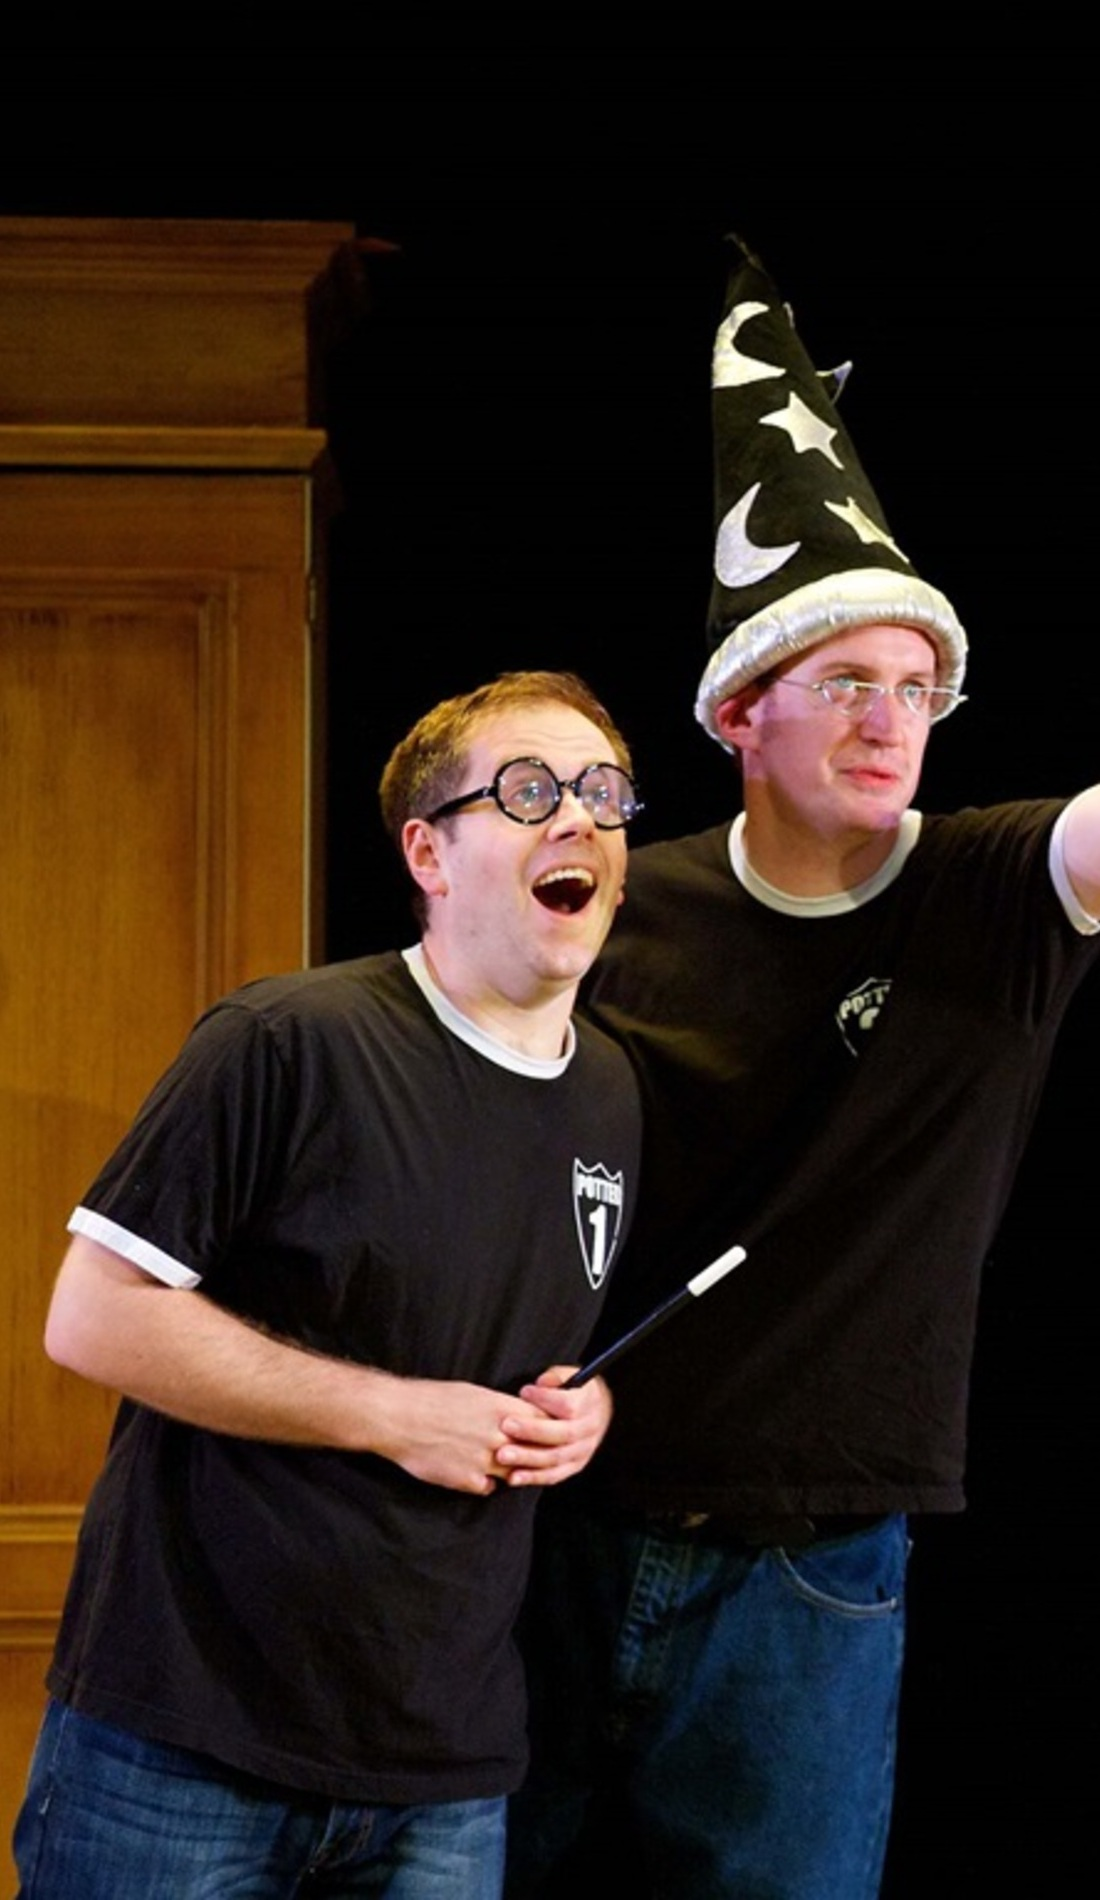 A Potted Potter live event